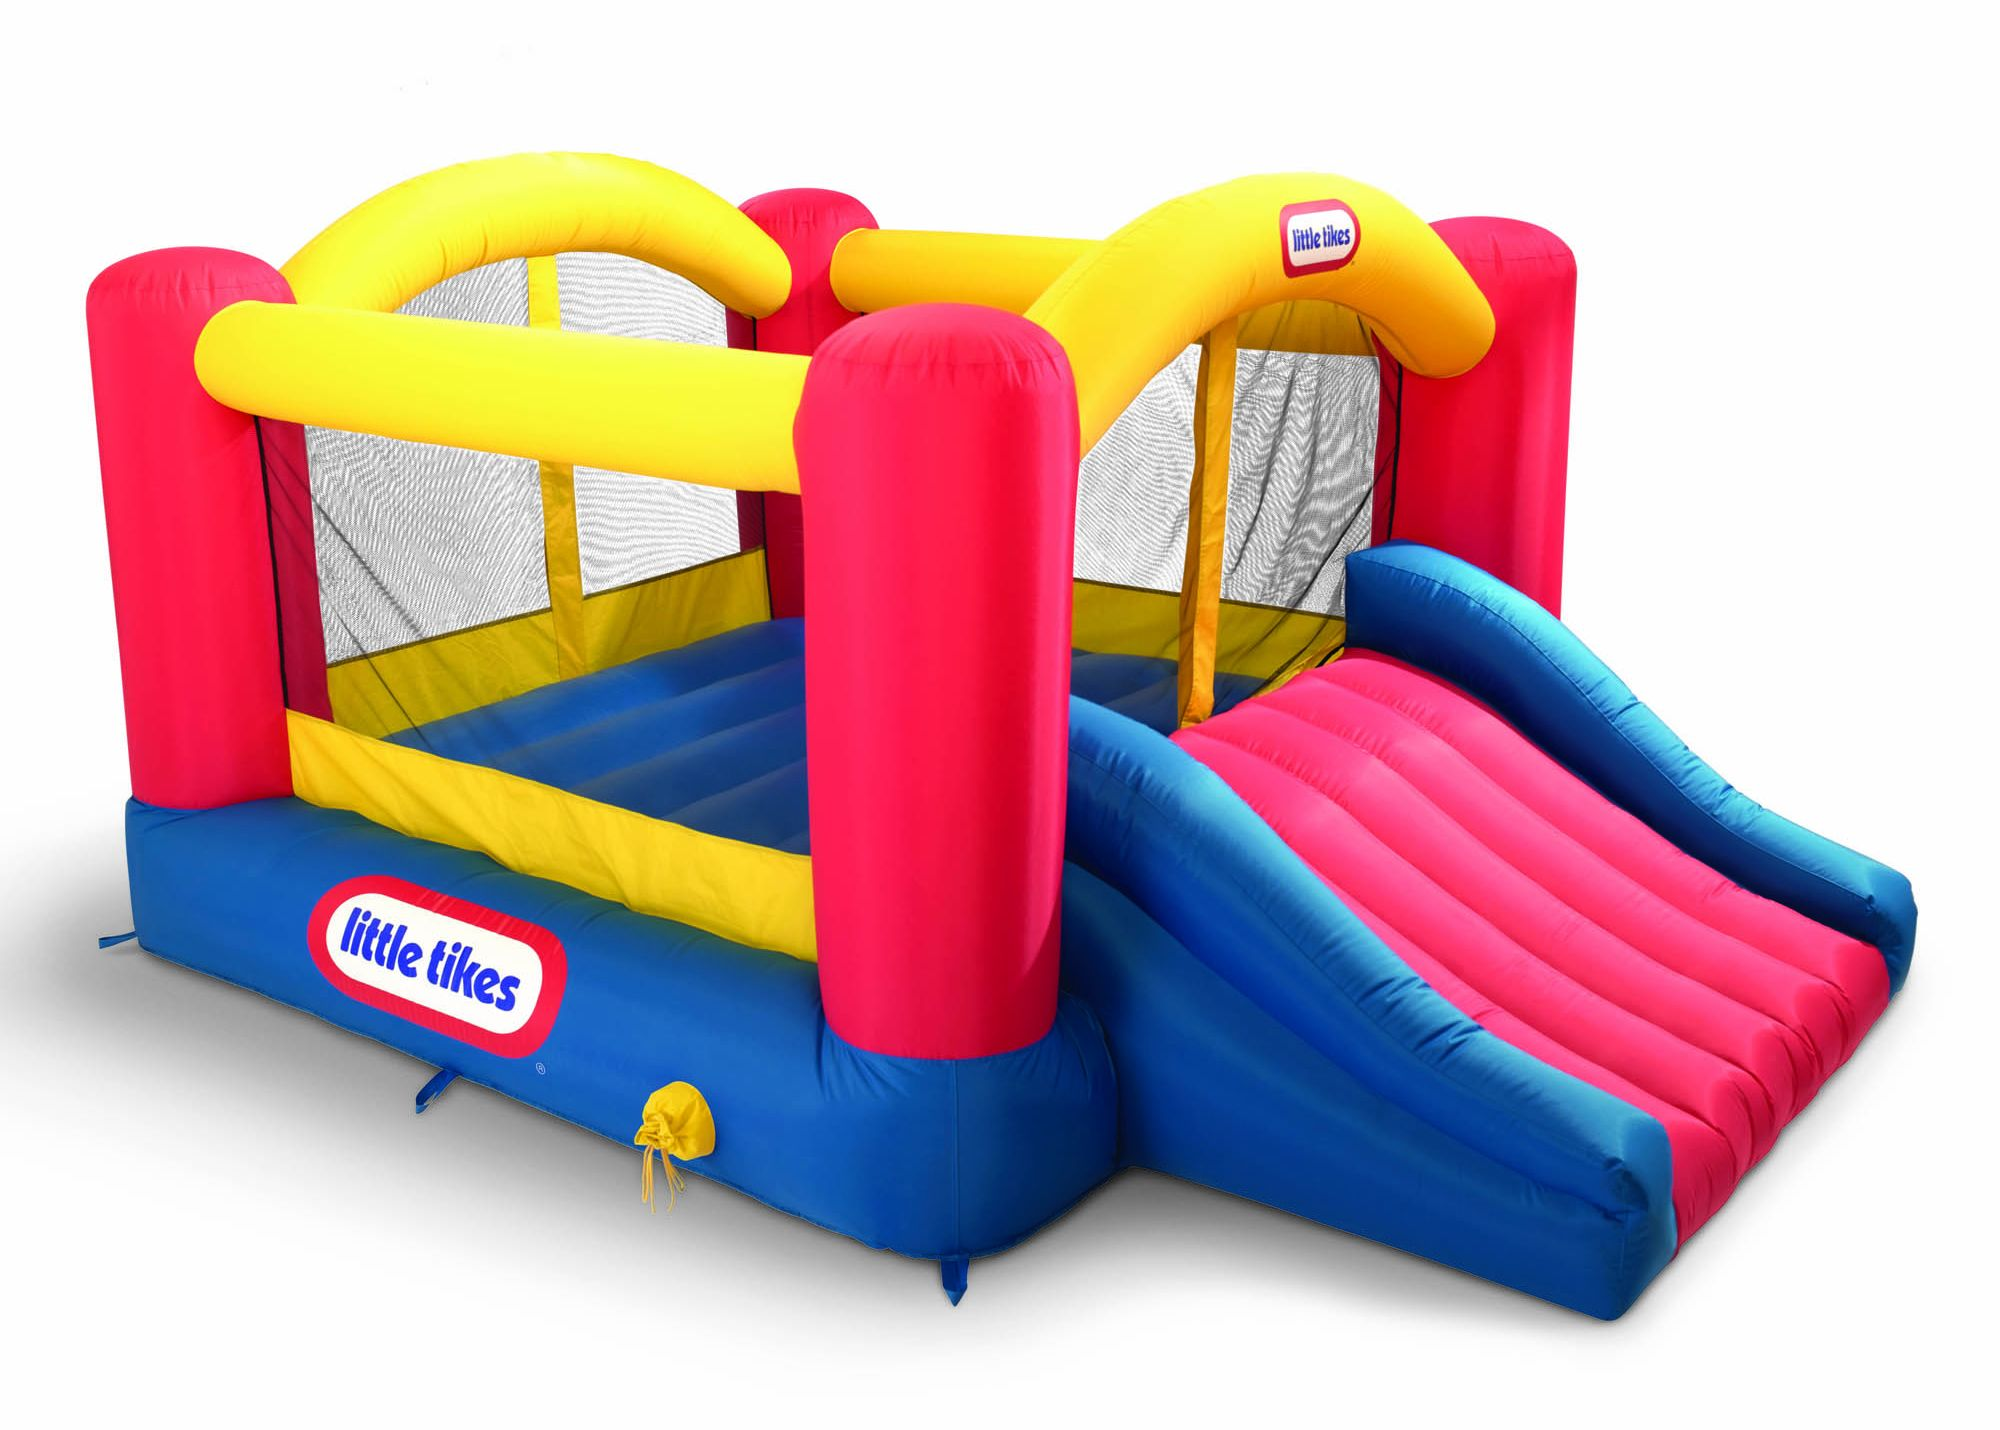 Wonderful Little Tikes Bounce House Made Of Caoutchouc With Slide And Curtain For Kids Play Room Ideas